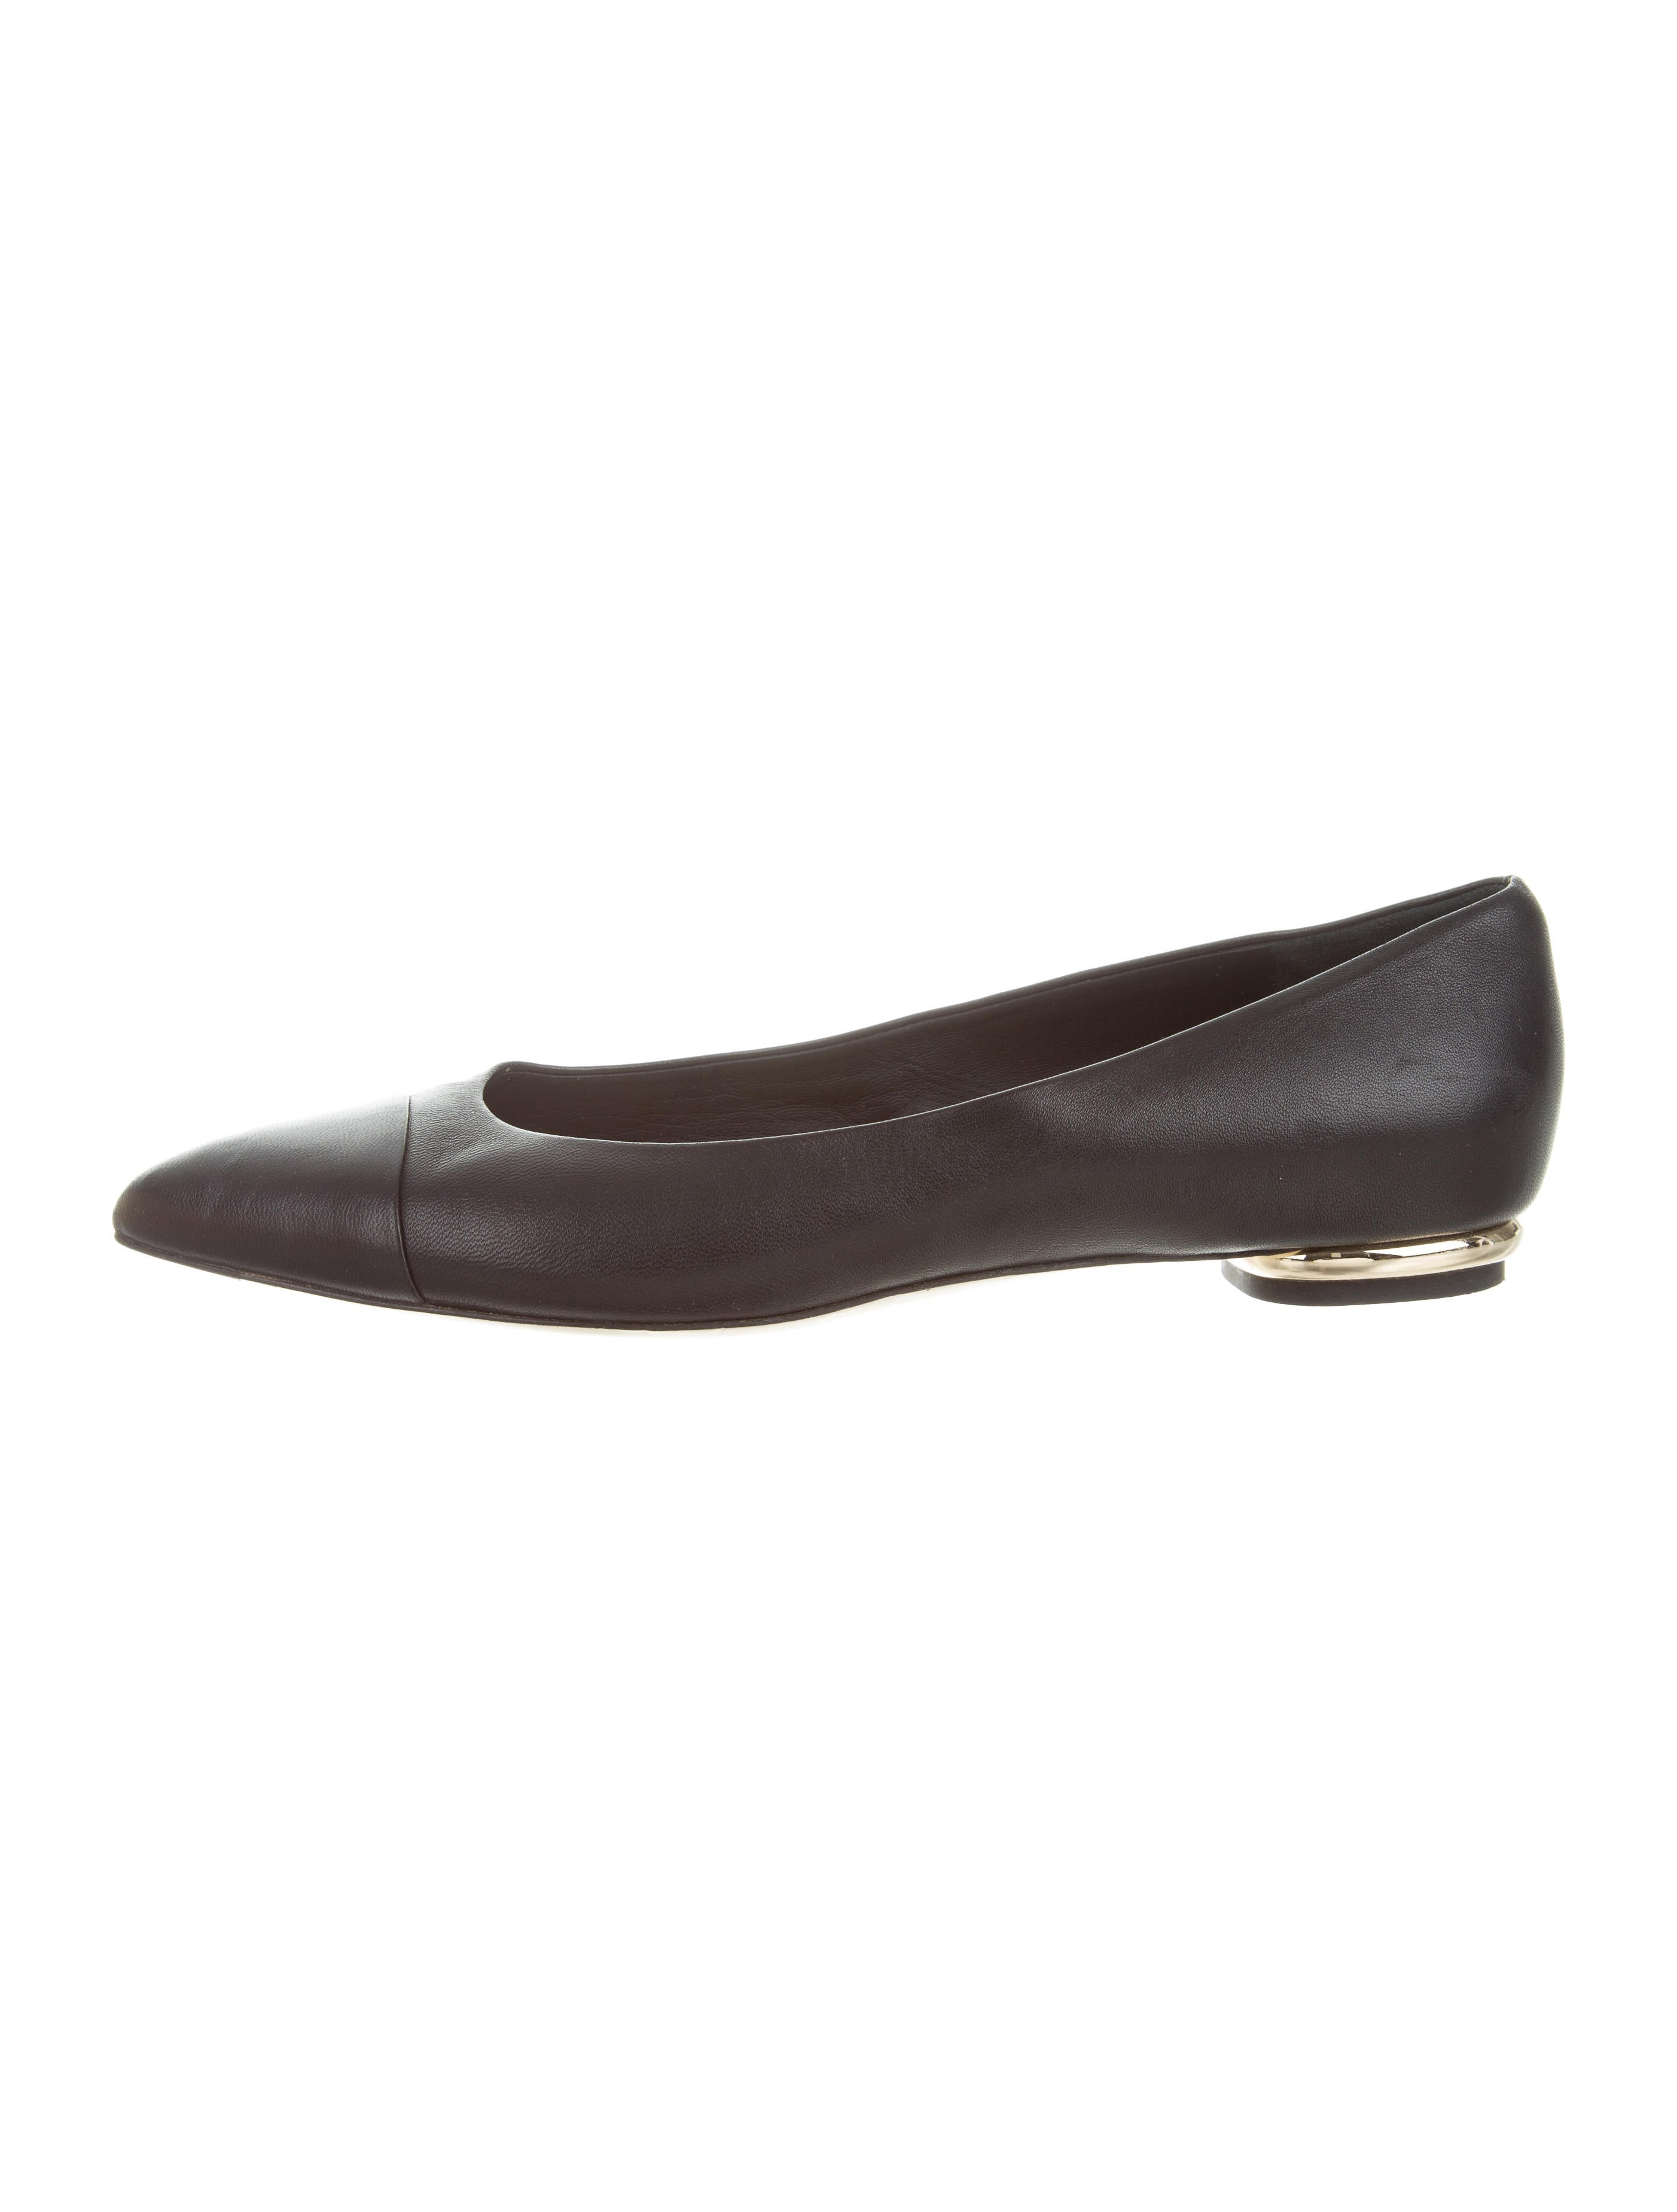 chanel leather pointed toe flats shoes cha186365 the